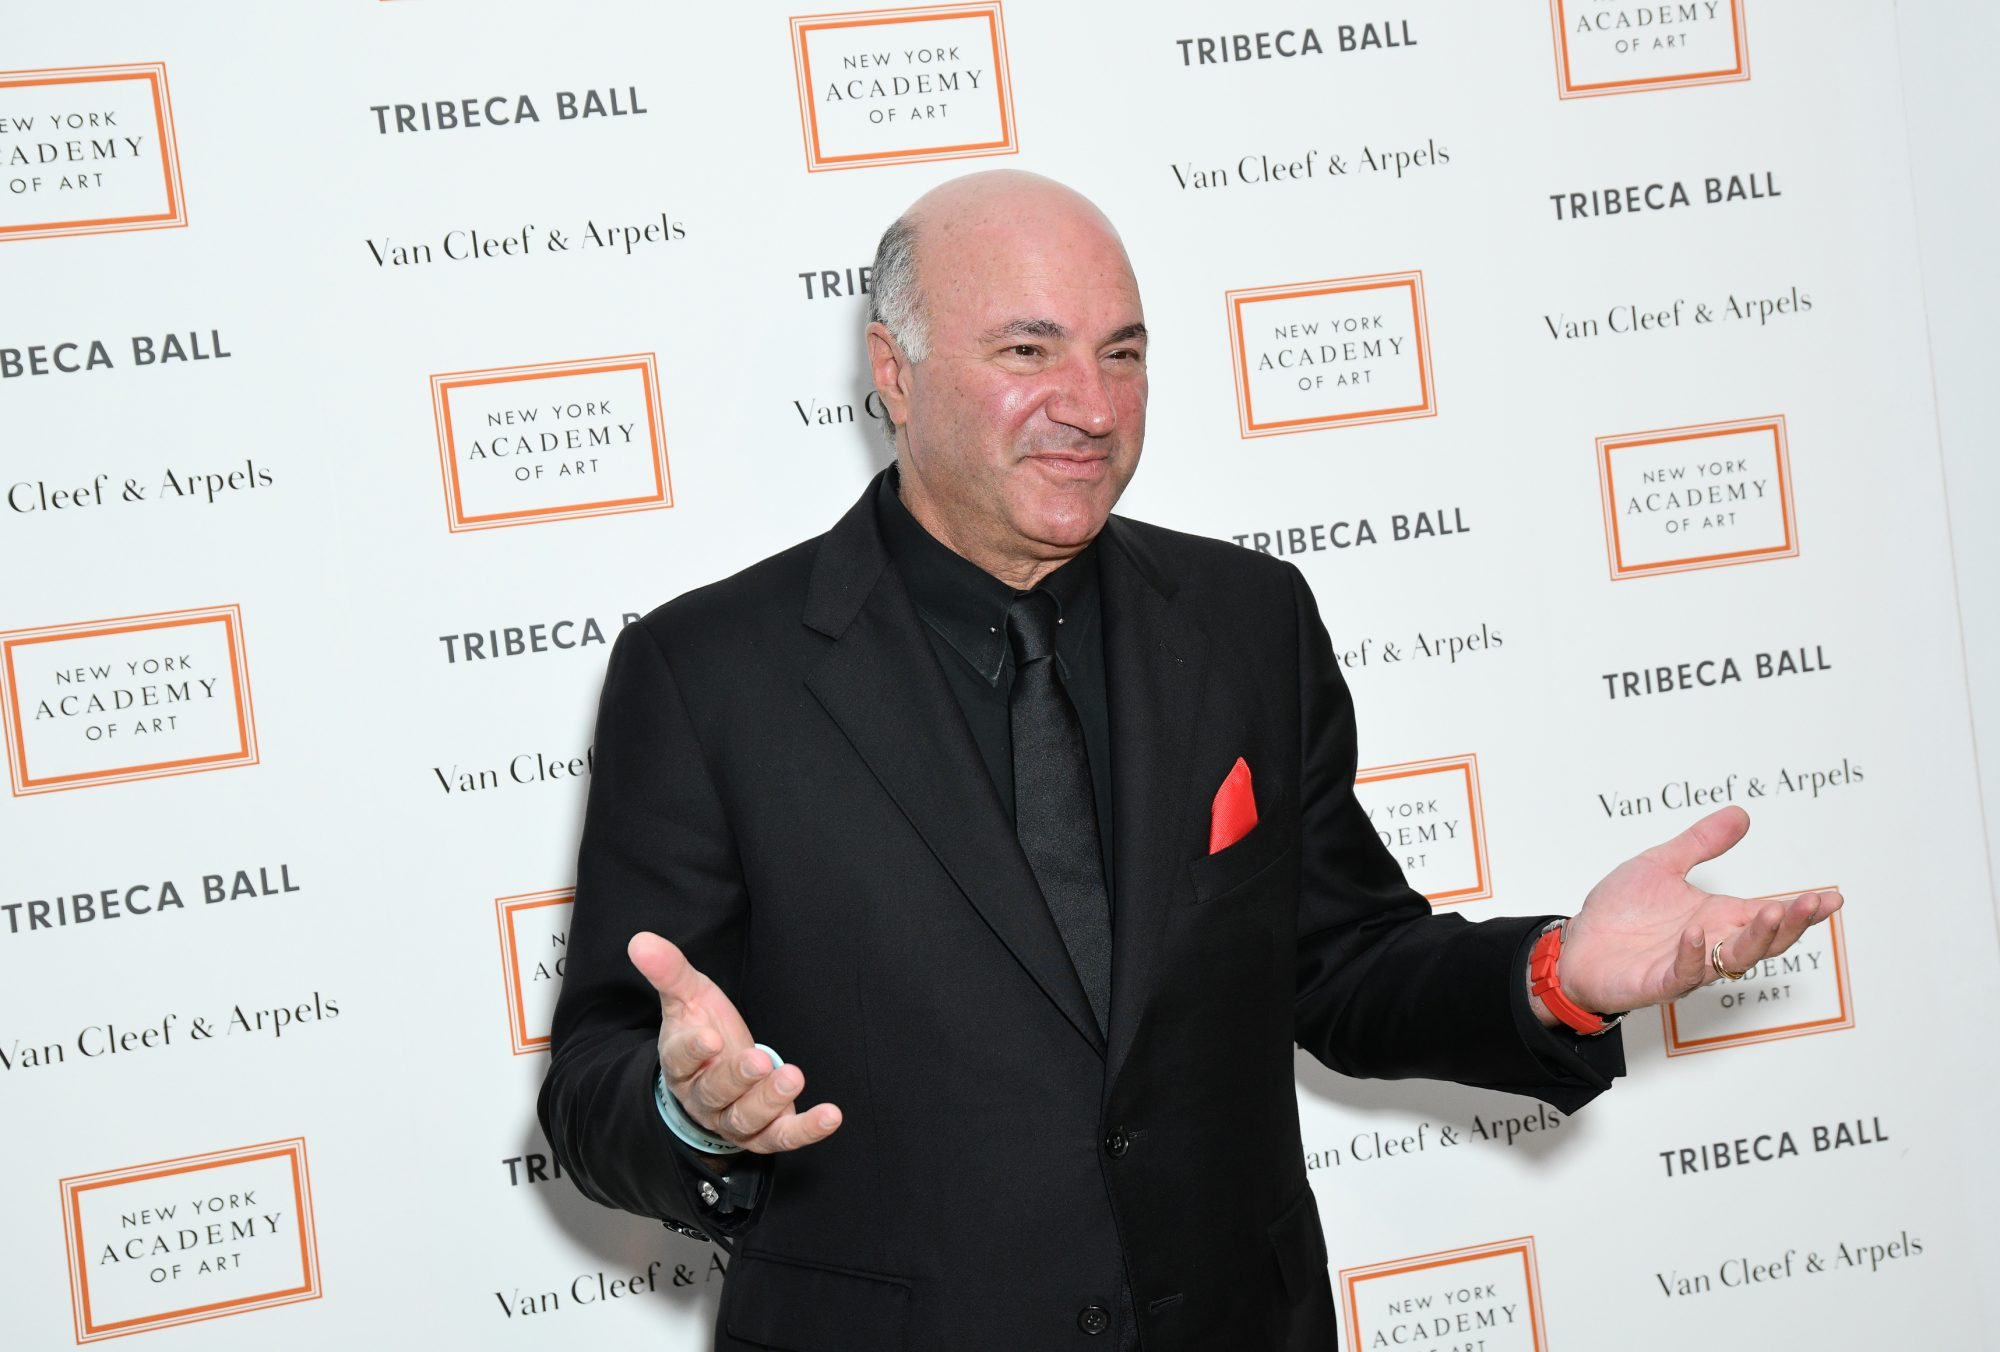 Kevin O'Leary - Shark Tank's Mr. Wonderful